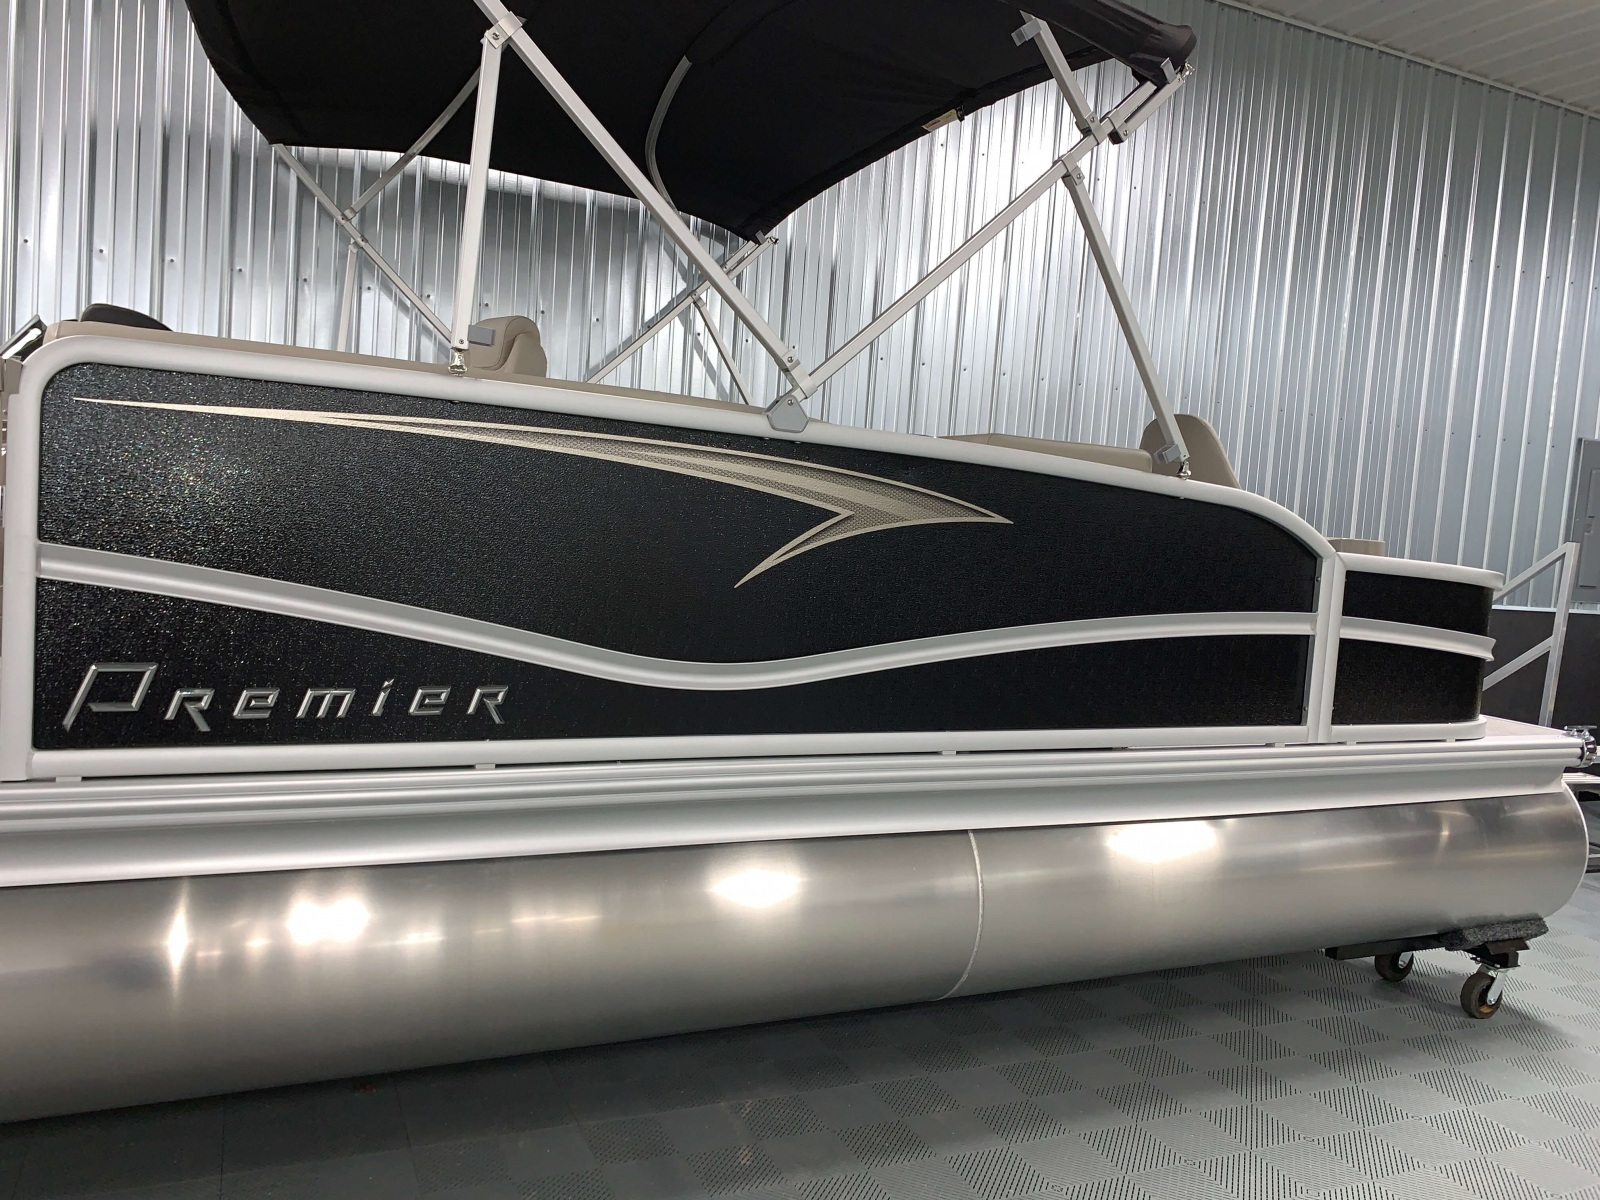 D-Rail Panel Design of a 2020 Premier 220 Gemini Fishing Pontoon